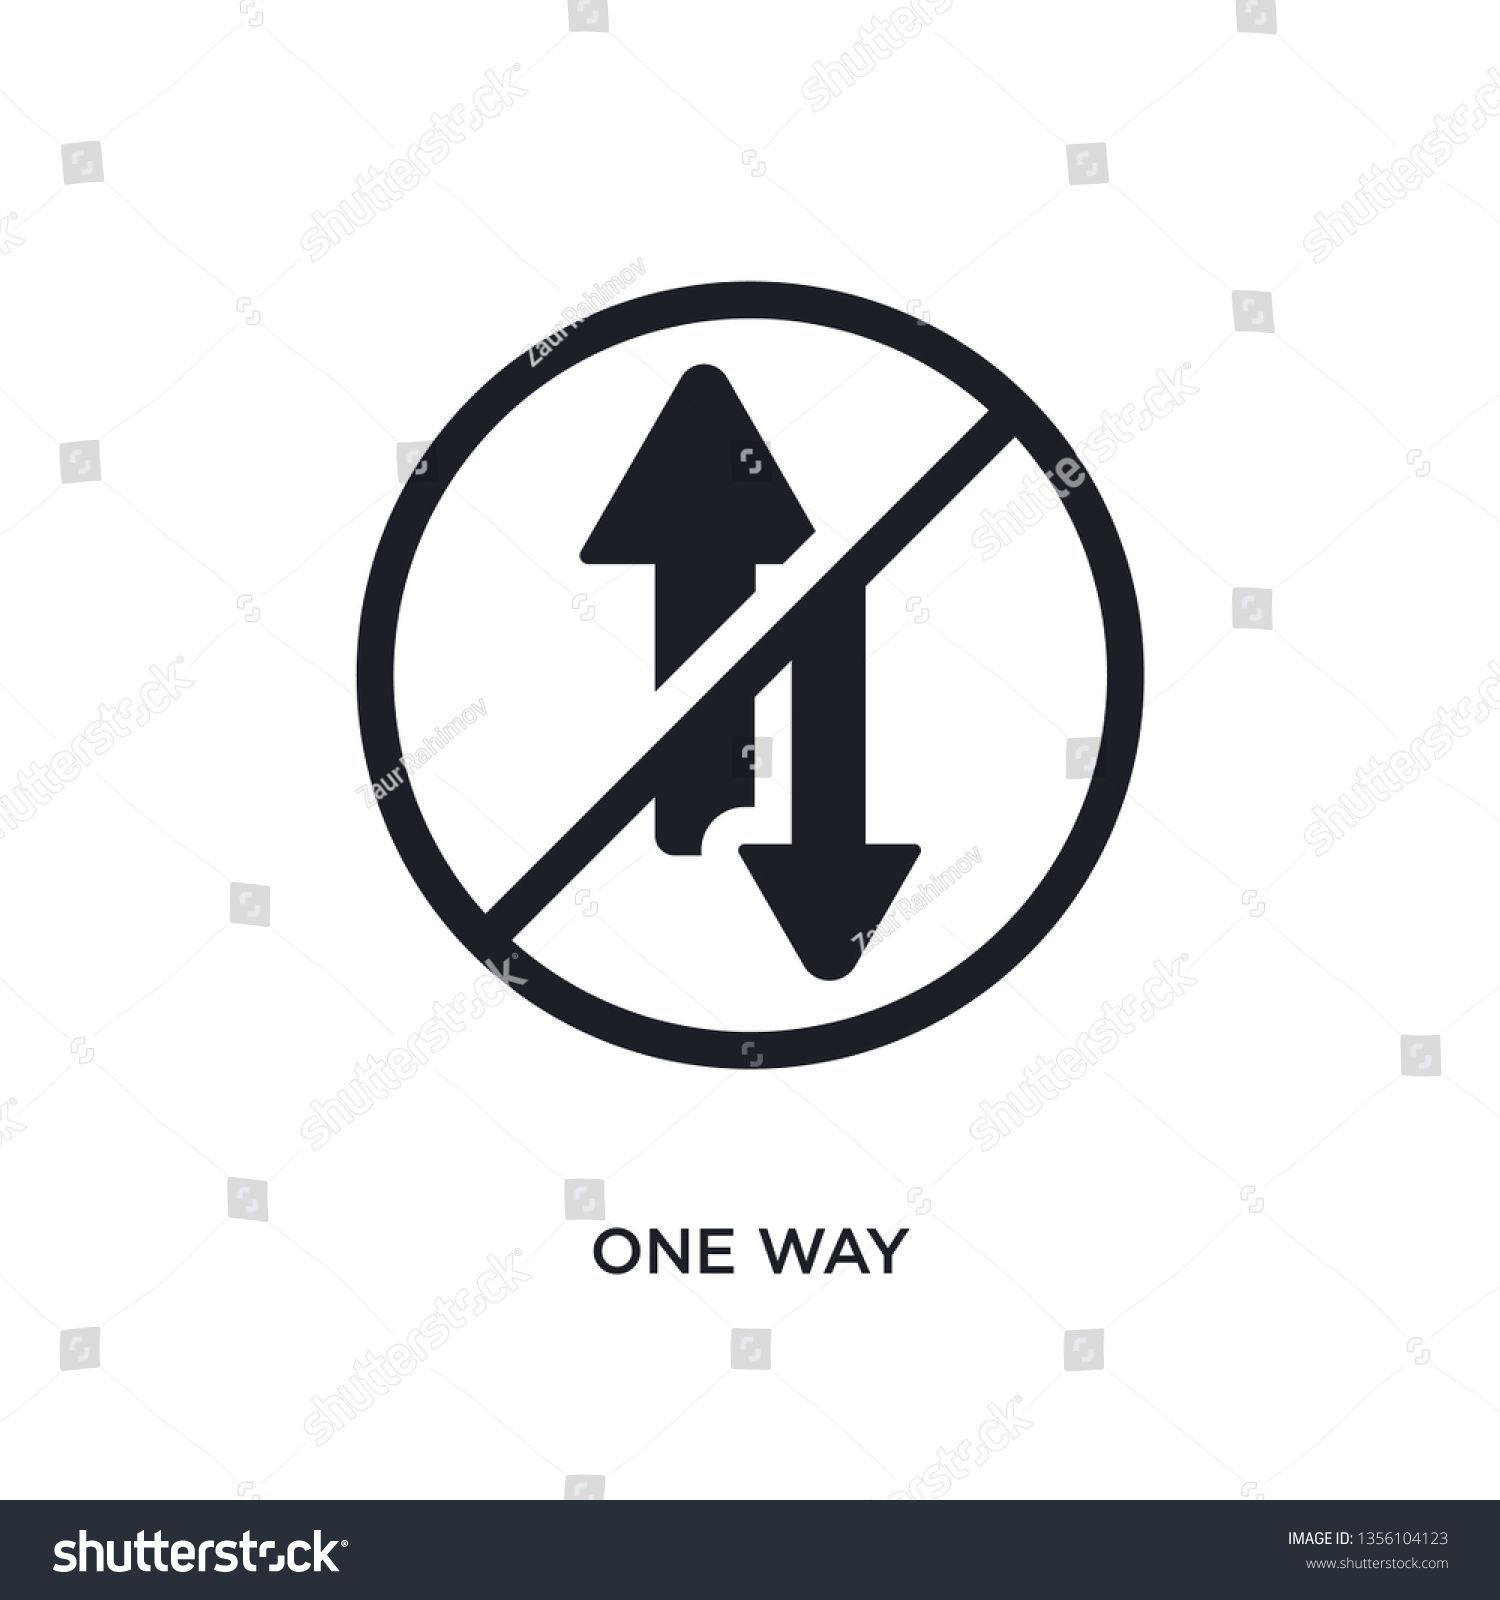 black one way isolated vector icon simple element illustration from traffic signs concept vector icons one way editable logo symbol design on white background can be use...